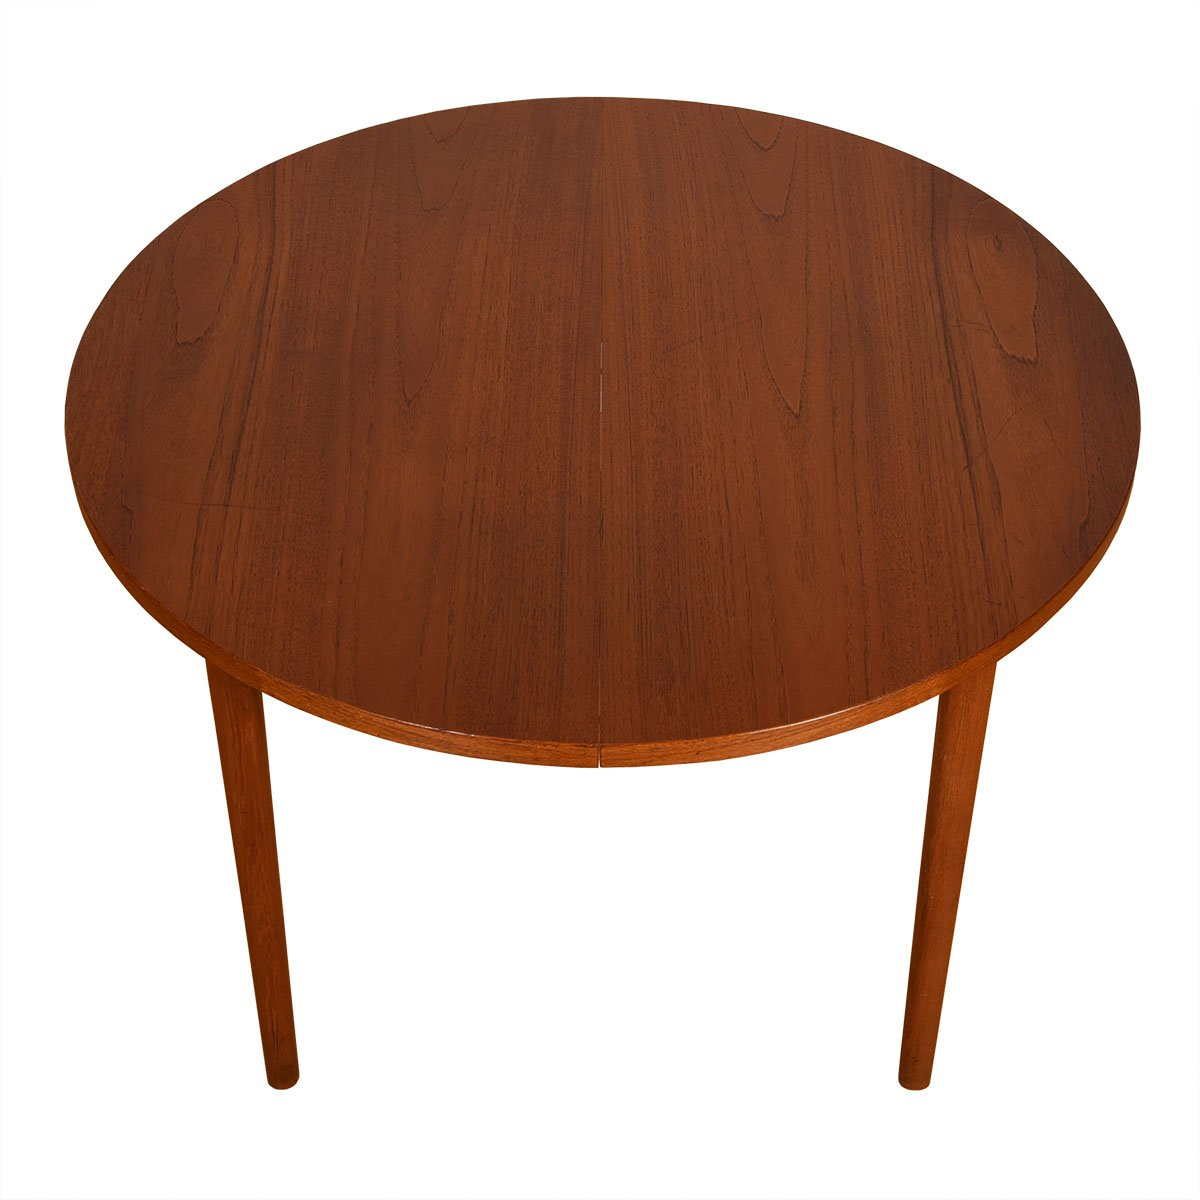 43.5″ Danish Teak Compact Round Dining Table w/ Leaf